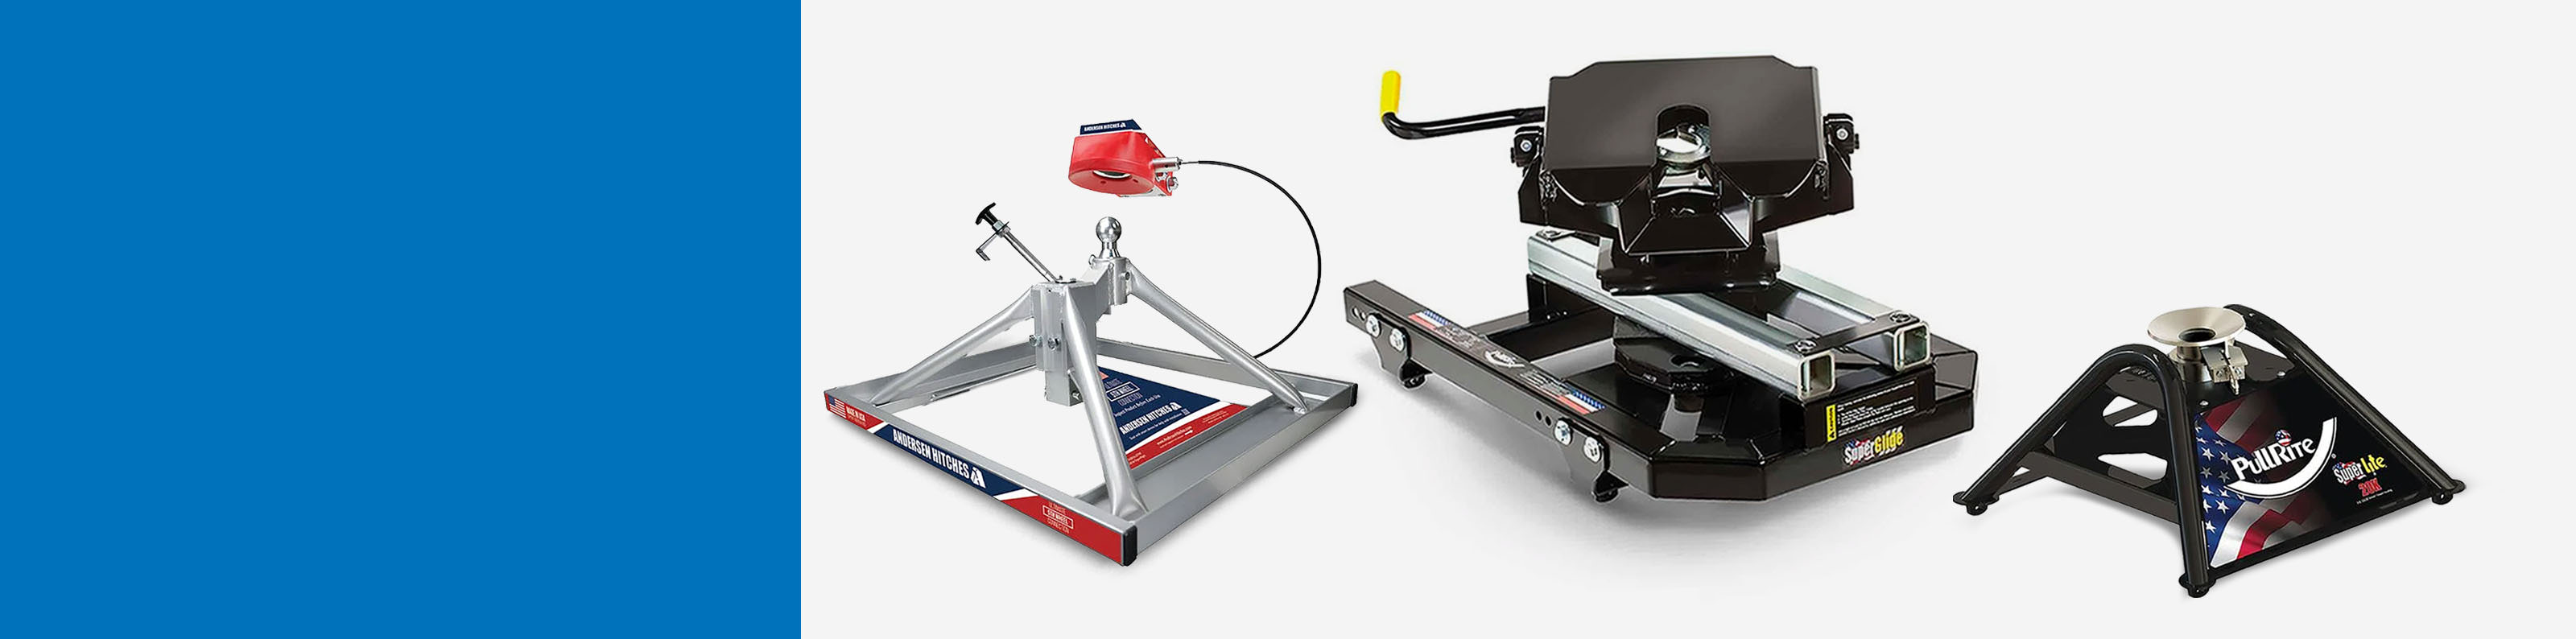 Up to $250 off 5th Wheel Hitches